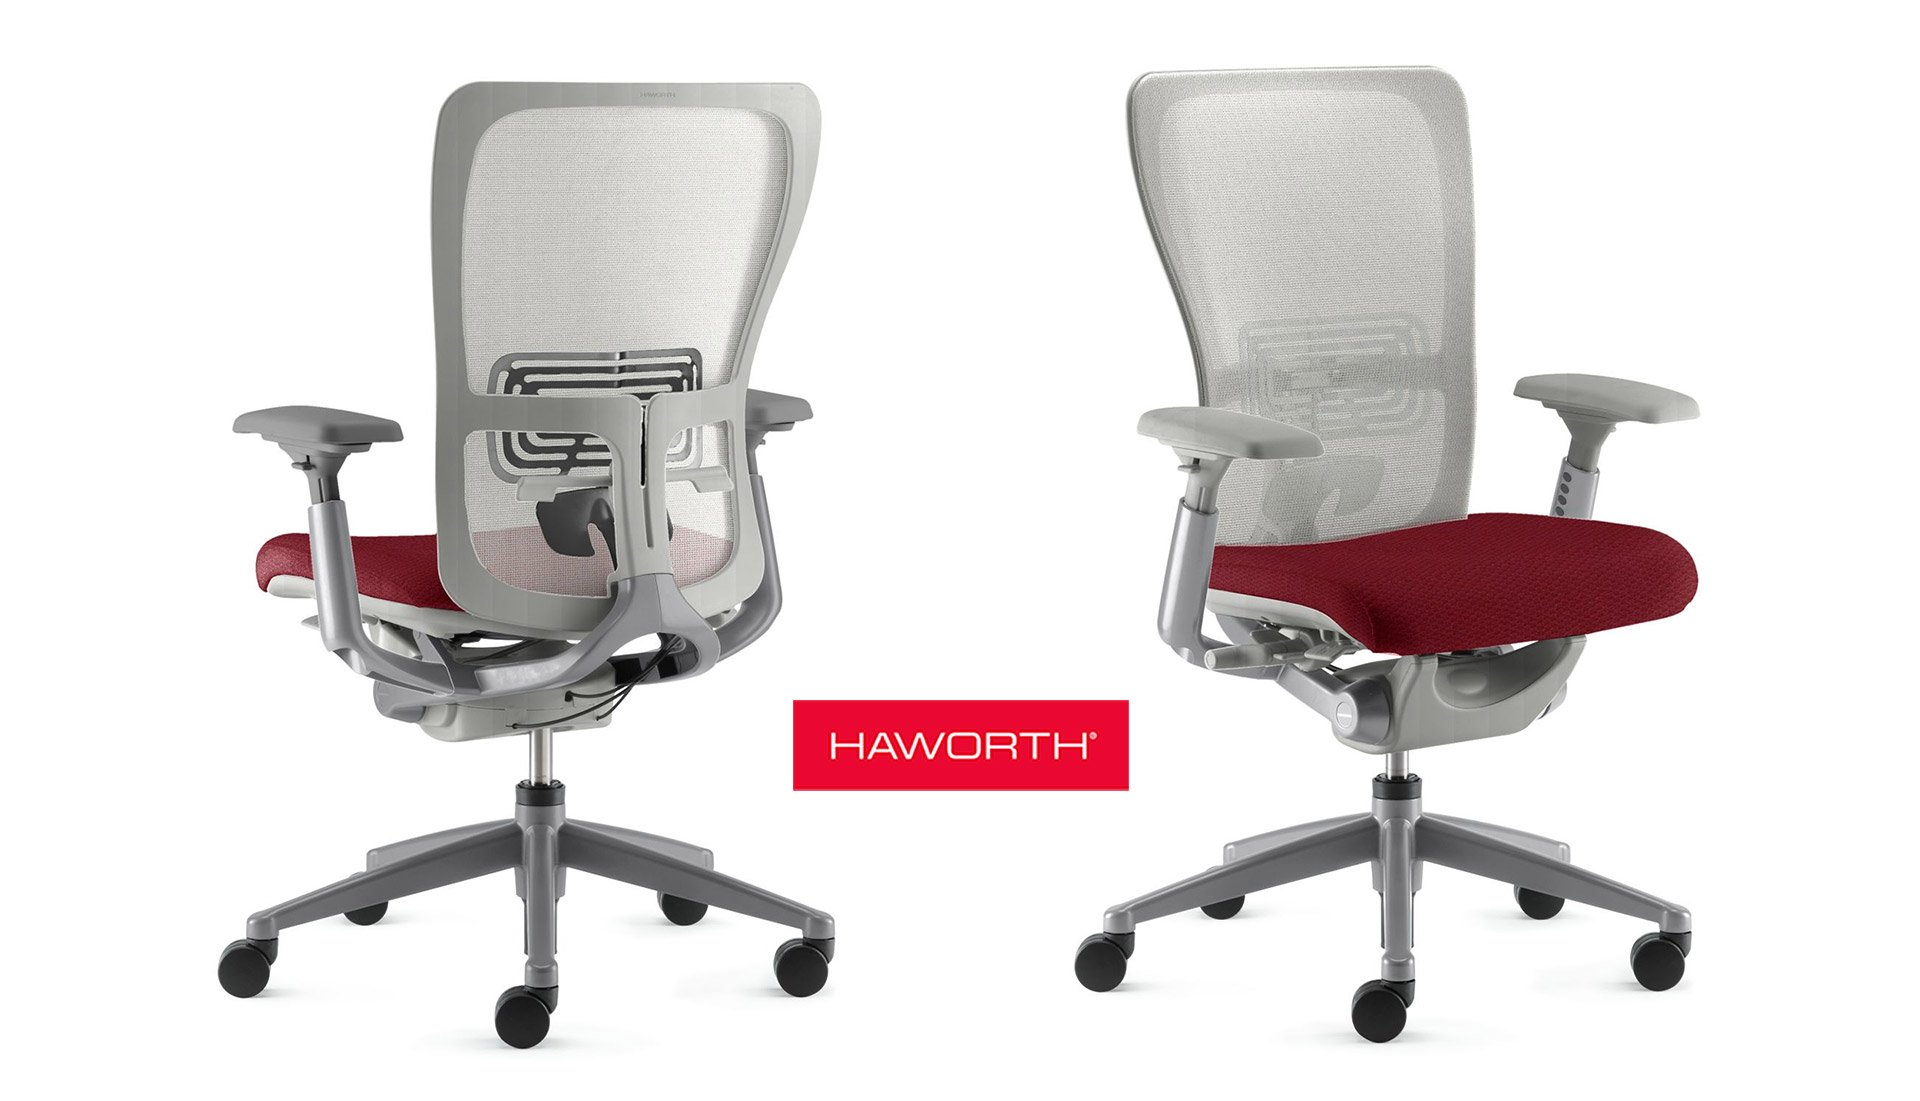 Win Haworth Zody Task Chair The Awesomer